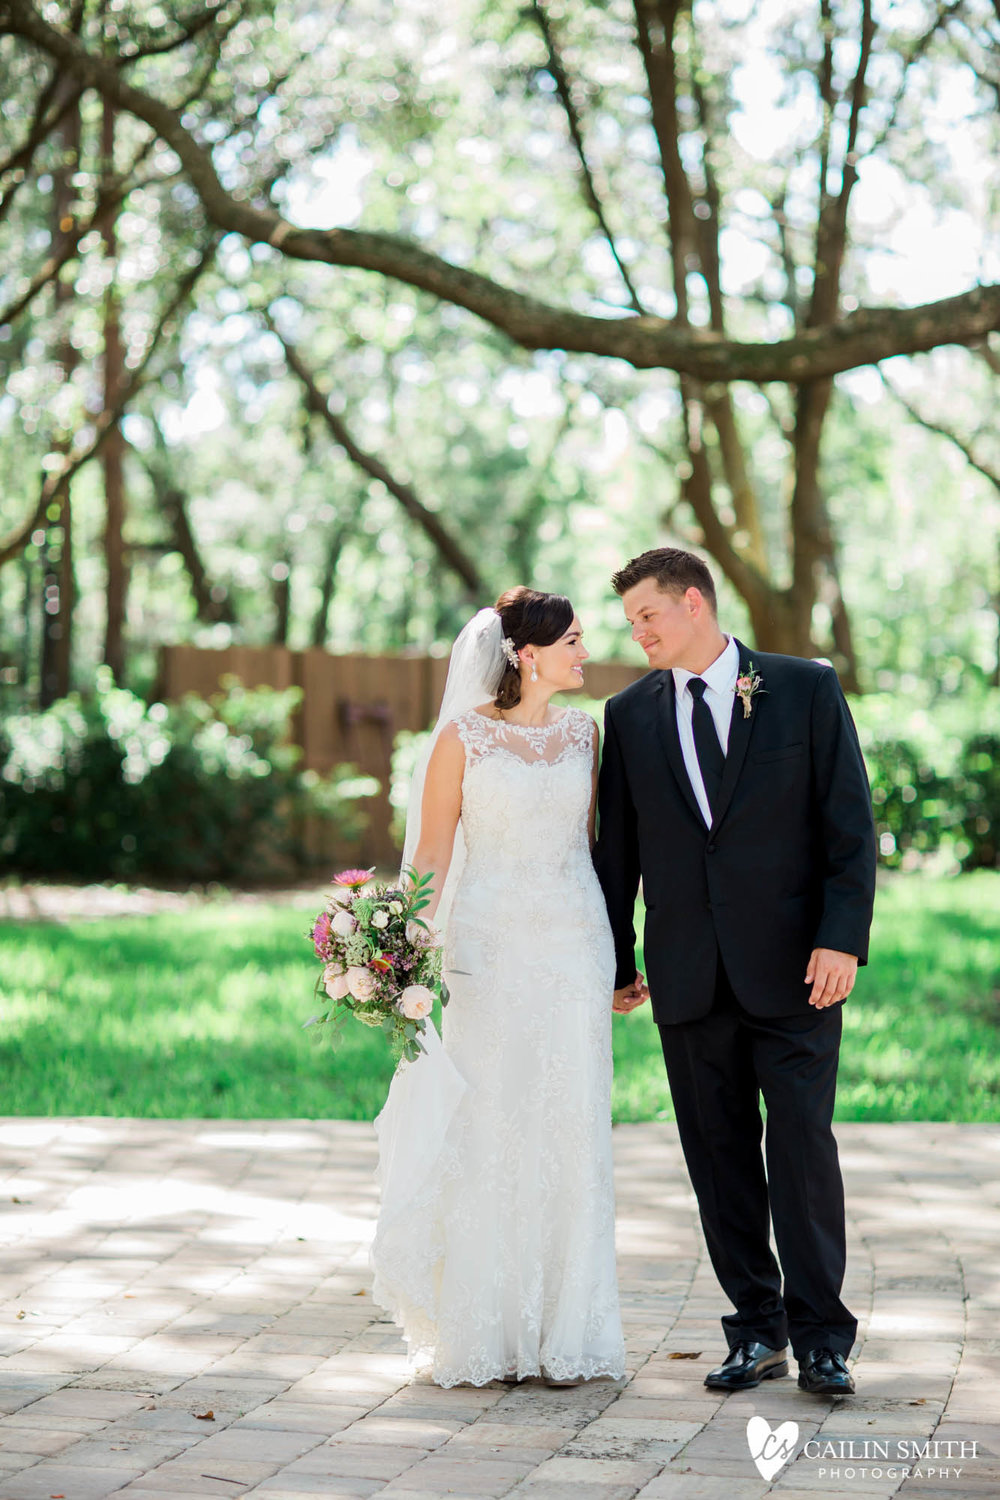 Bethany_Kyle_Bowing_Oaks_Plantation_Wedding_Photography_0043.jpg